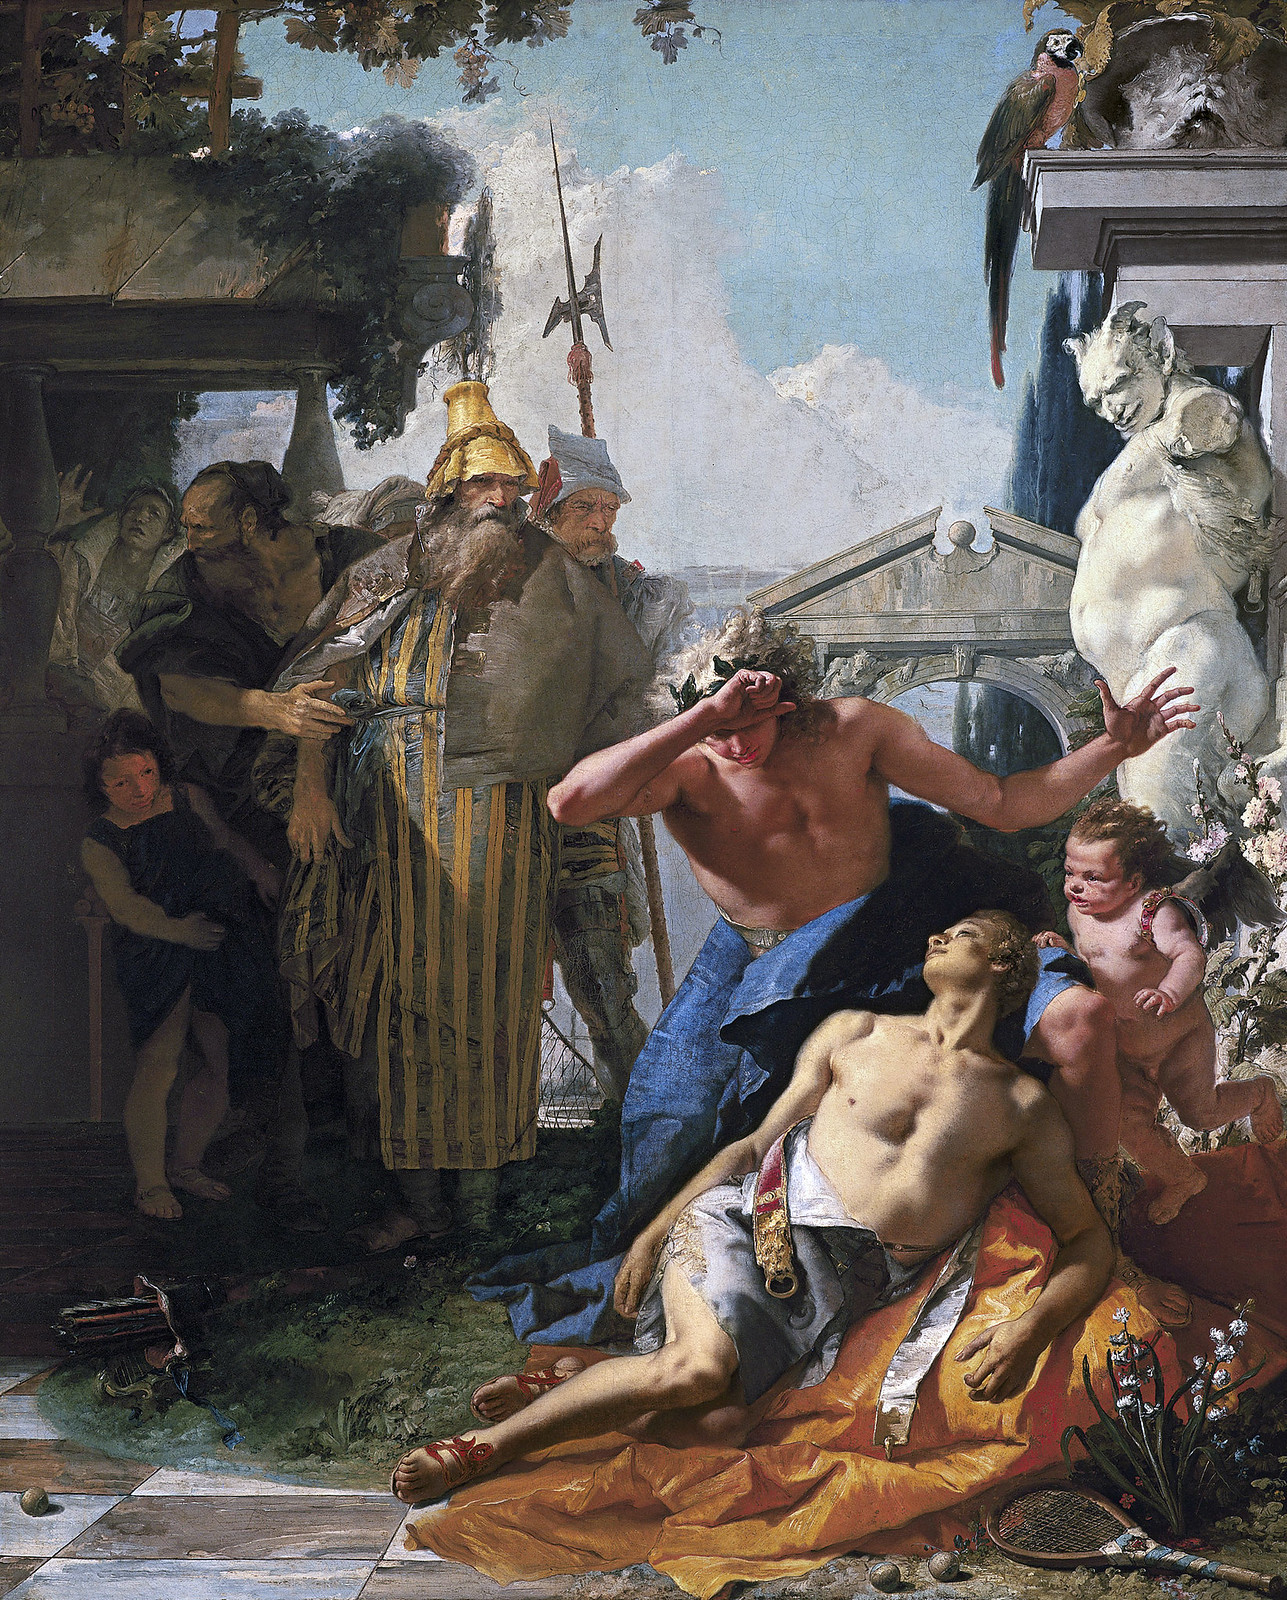 The Death of Hyacinth by Giovanni Battista Tiepolo, 1753